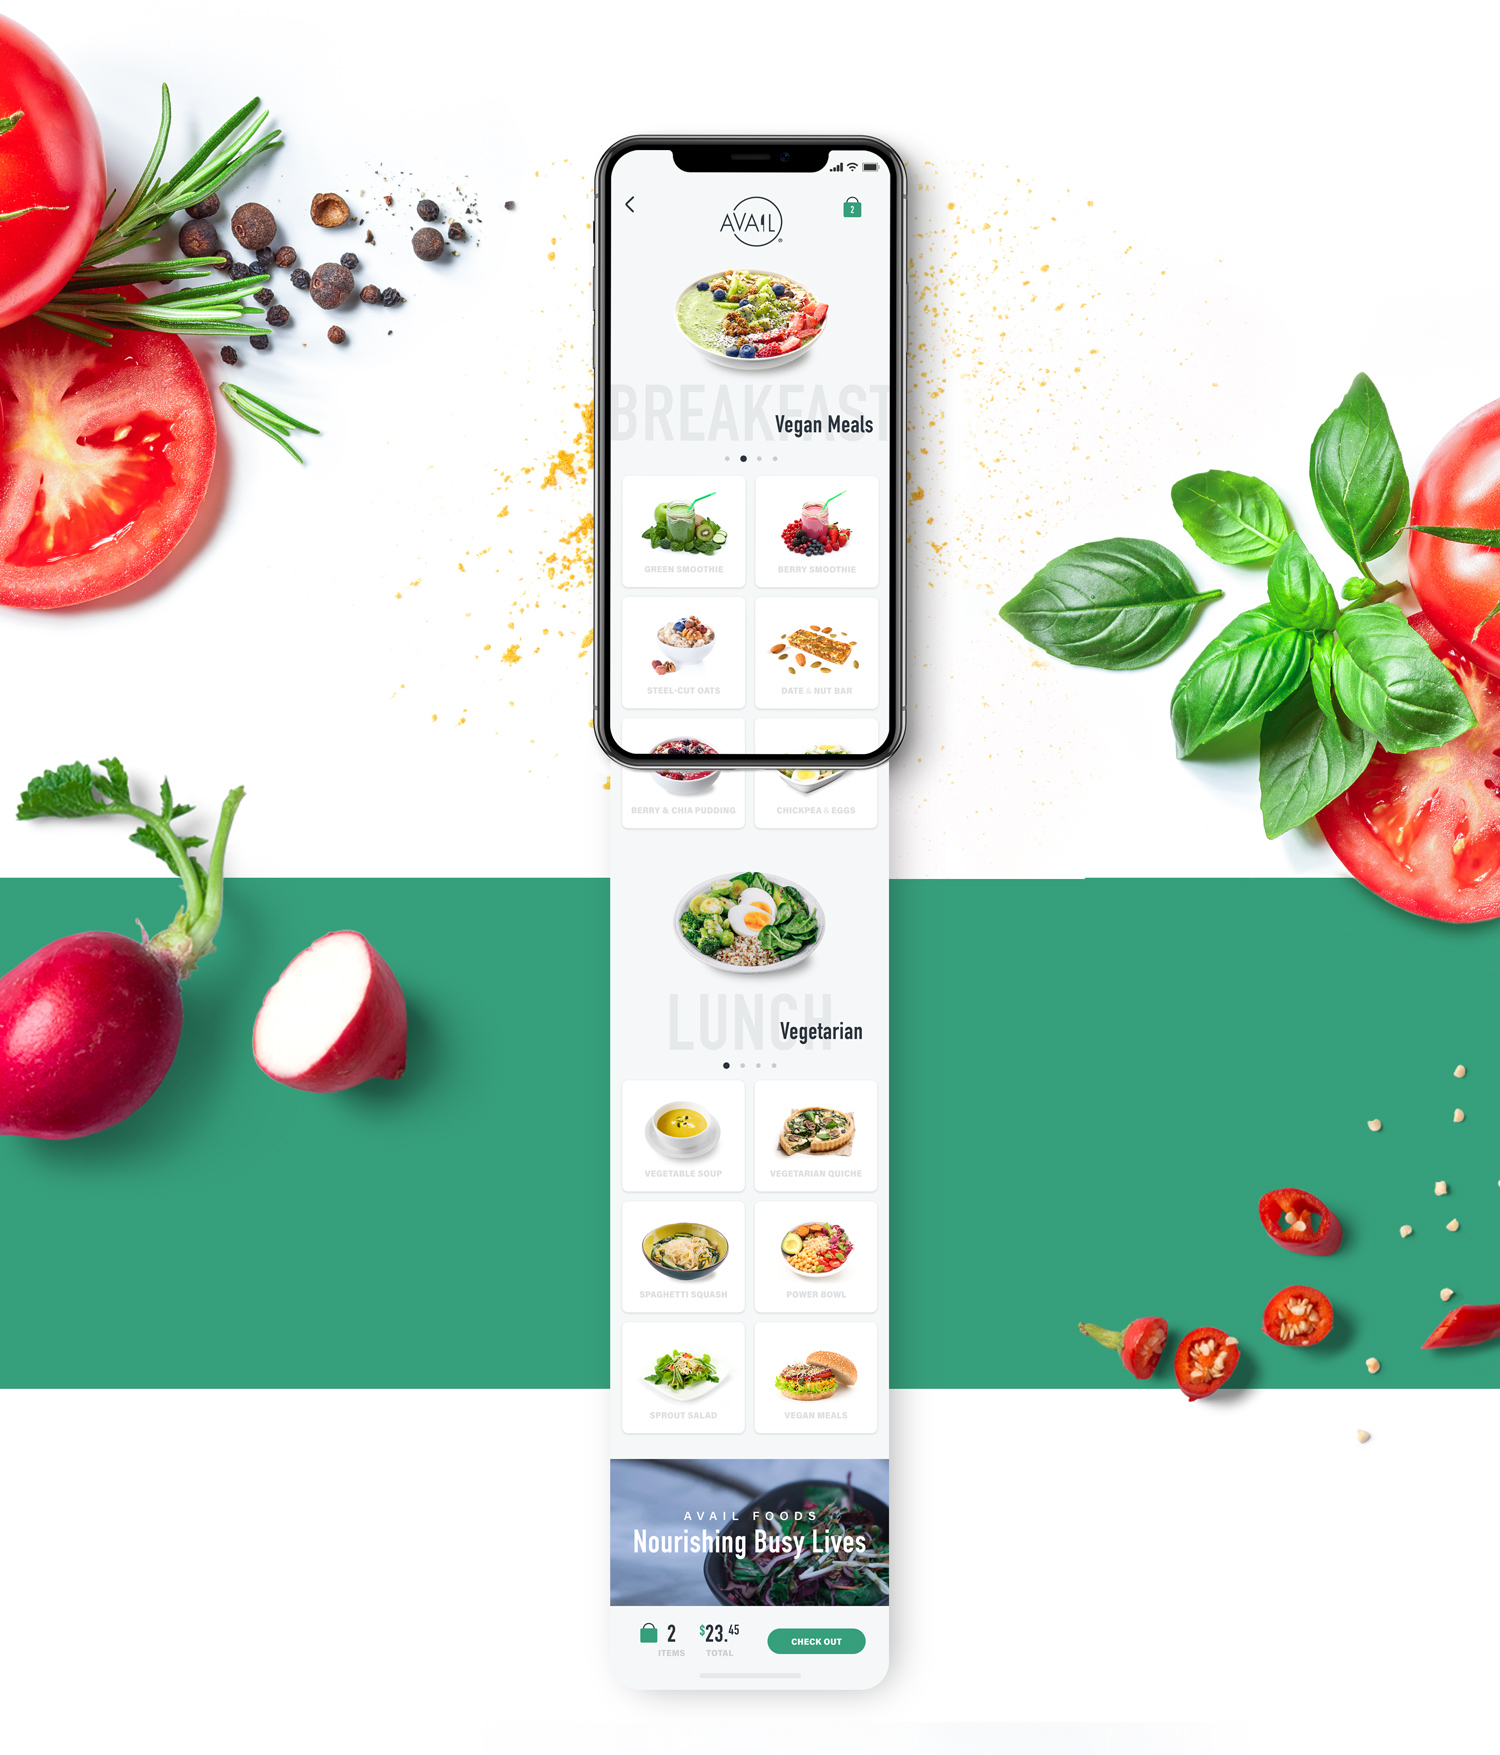 AvailFoods_Application_CaseStudy.jpg